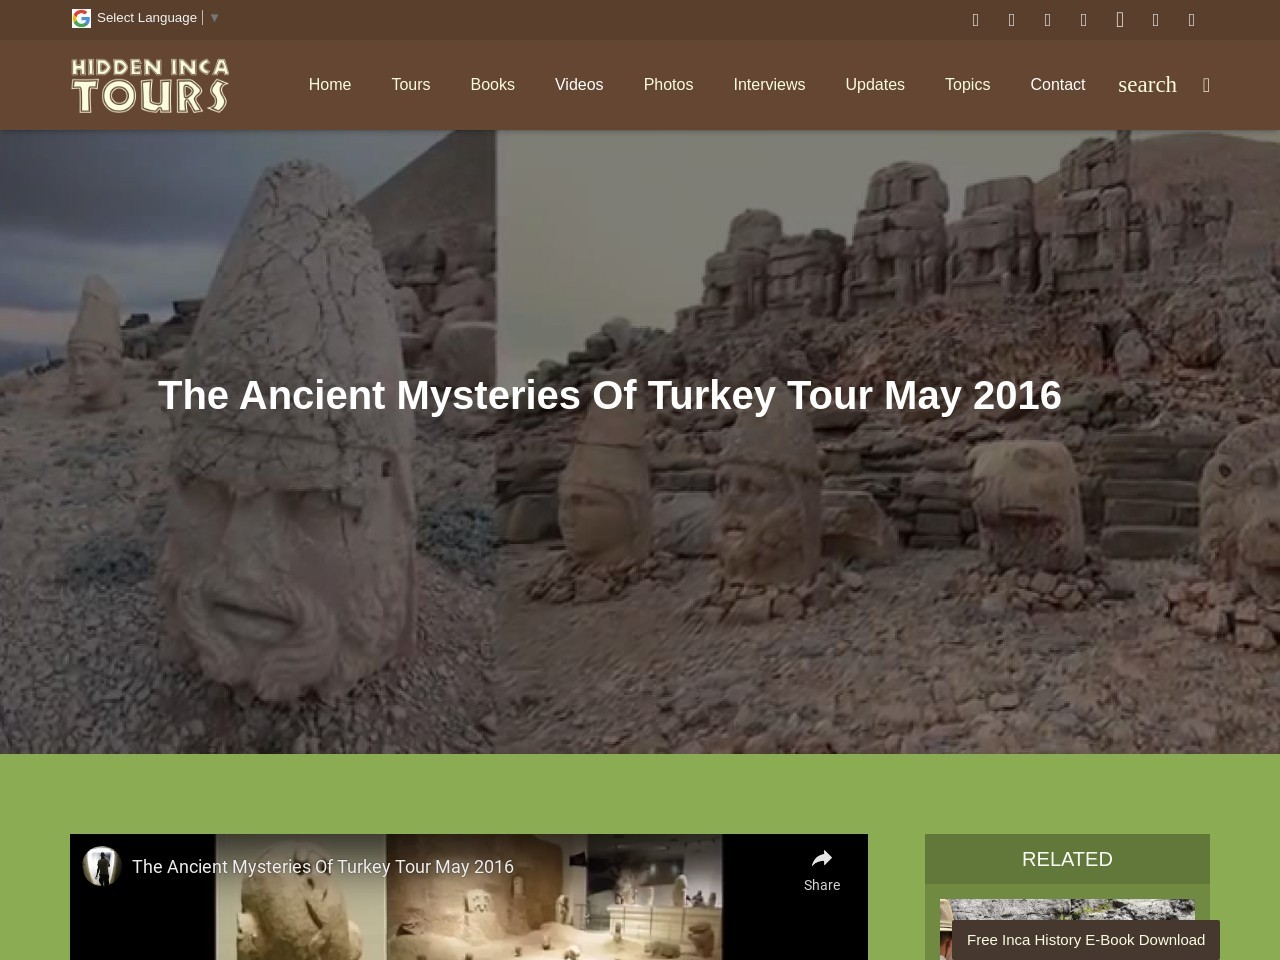 The Ancient Mysteries Of Turkey Tour May 2016